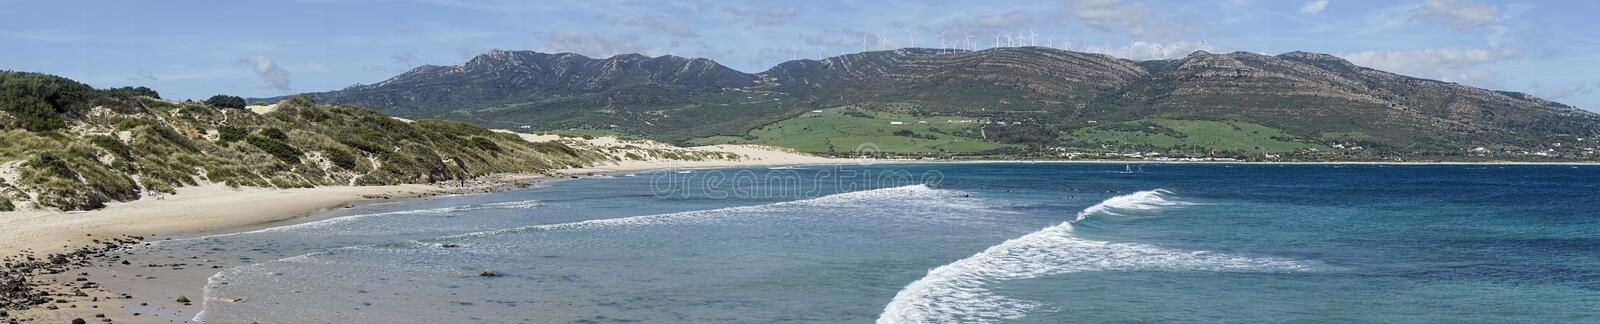 Beautiful virgin beaches of Andalusia, valdevaqueros in the province of Cadiz. Views of the beaches of Tarifa on the southern coast of Spain, Andalusia stock image